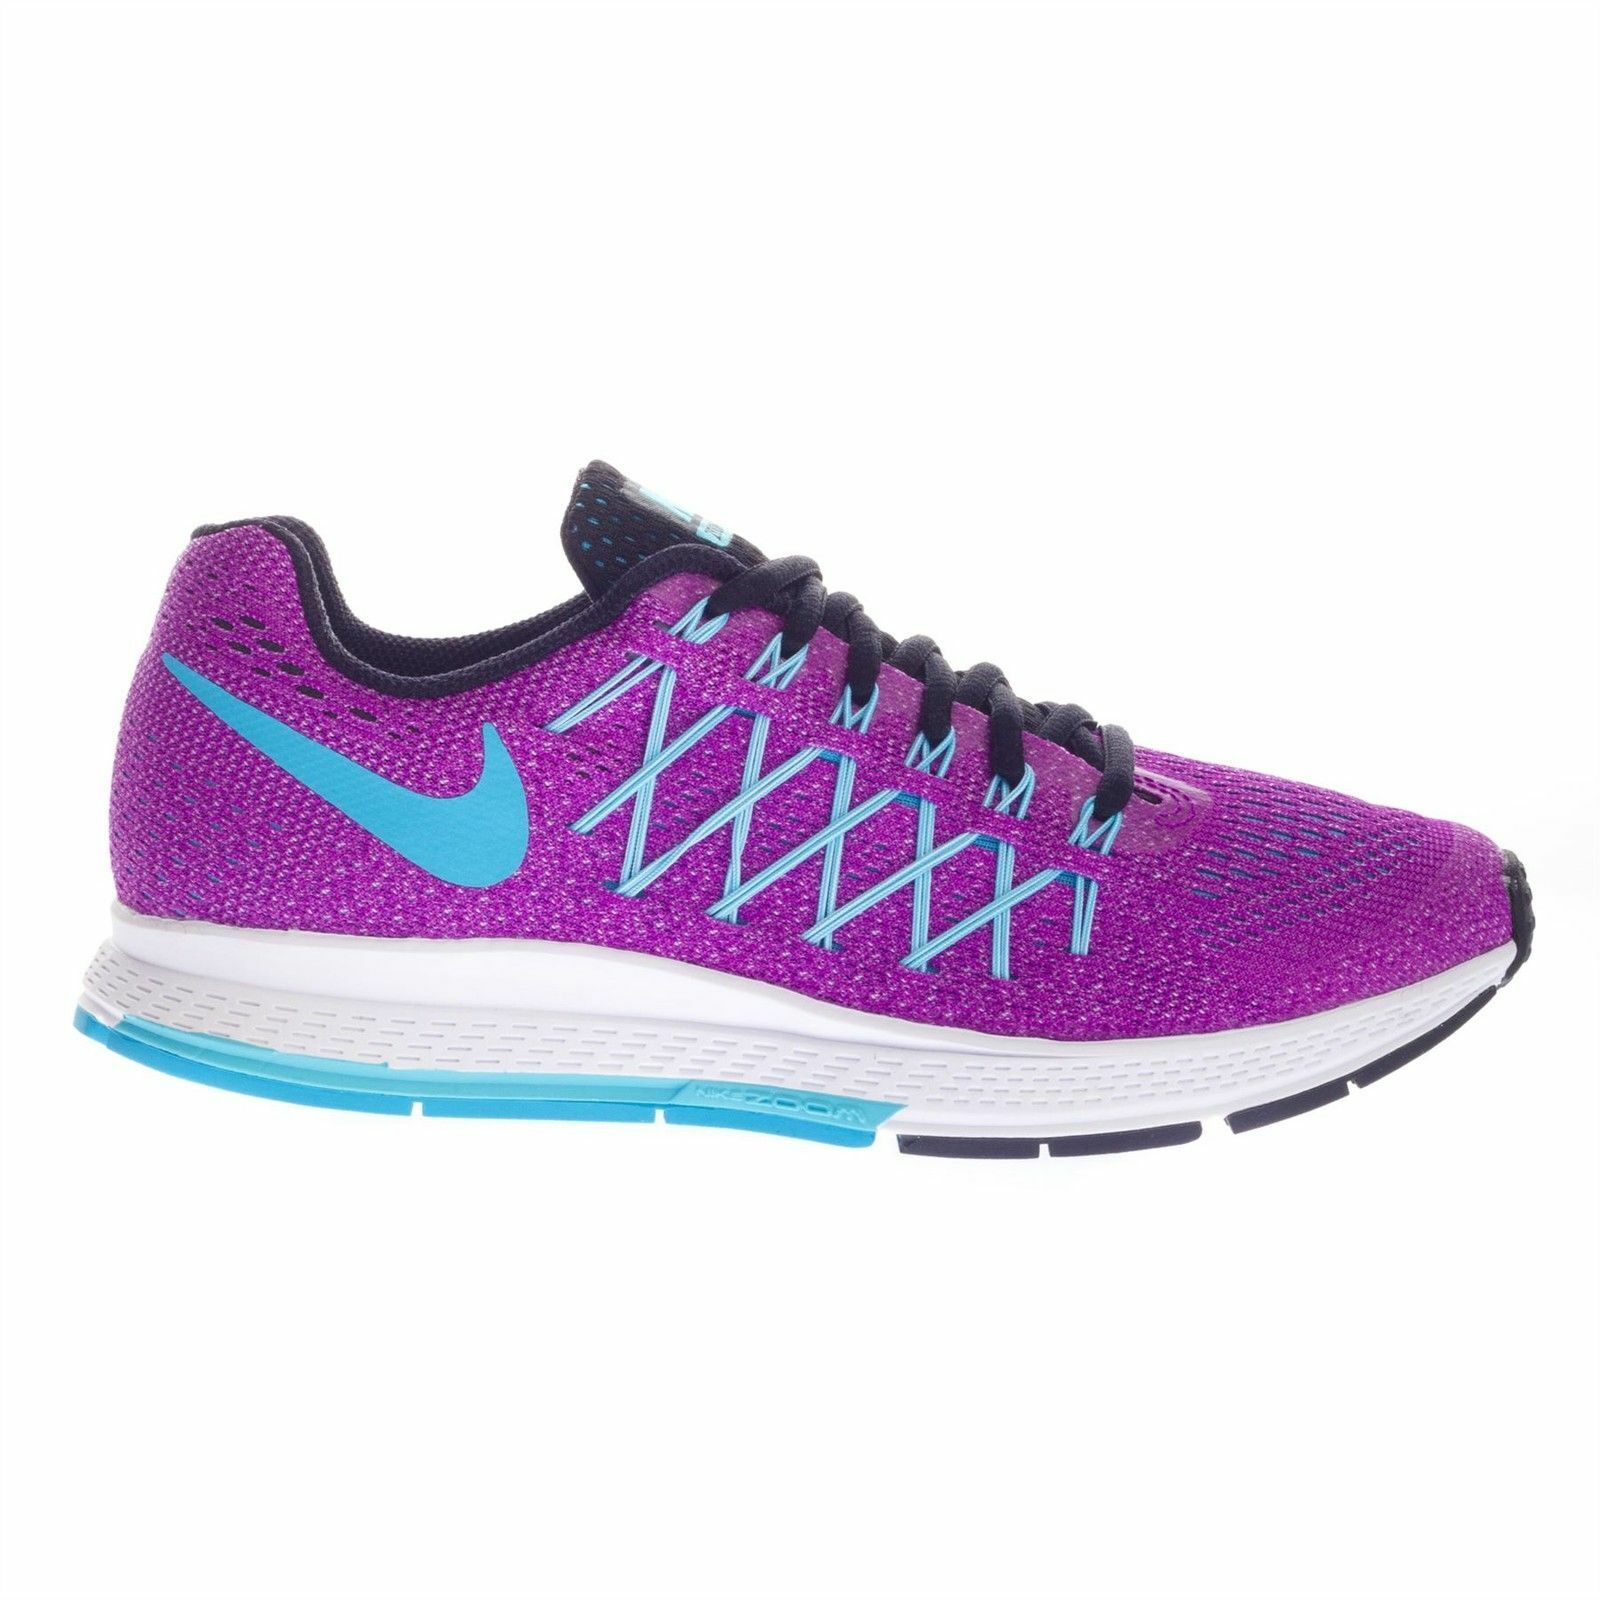 Couleurs variées 9672a dadff Details about Nike Women's Air Zoom Pegasus 32 Low Top Running Trainers